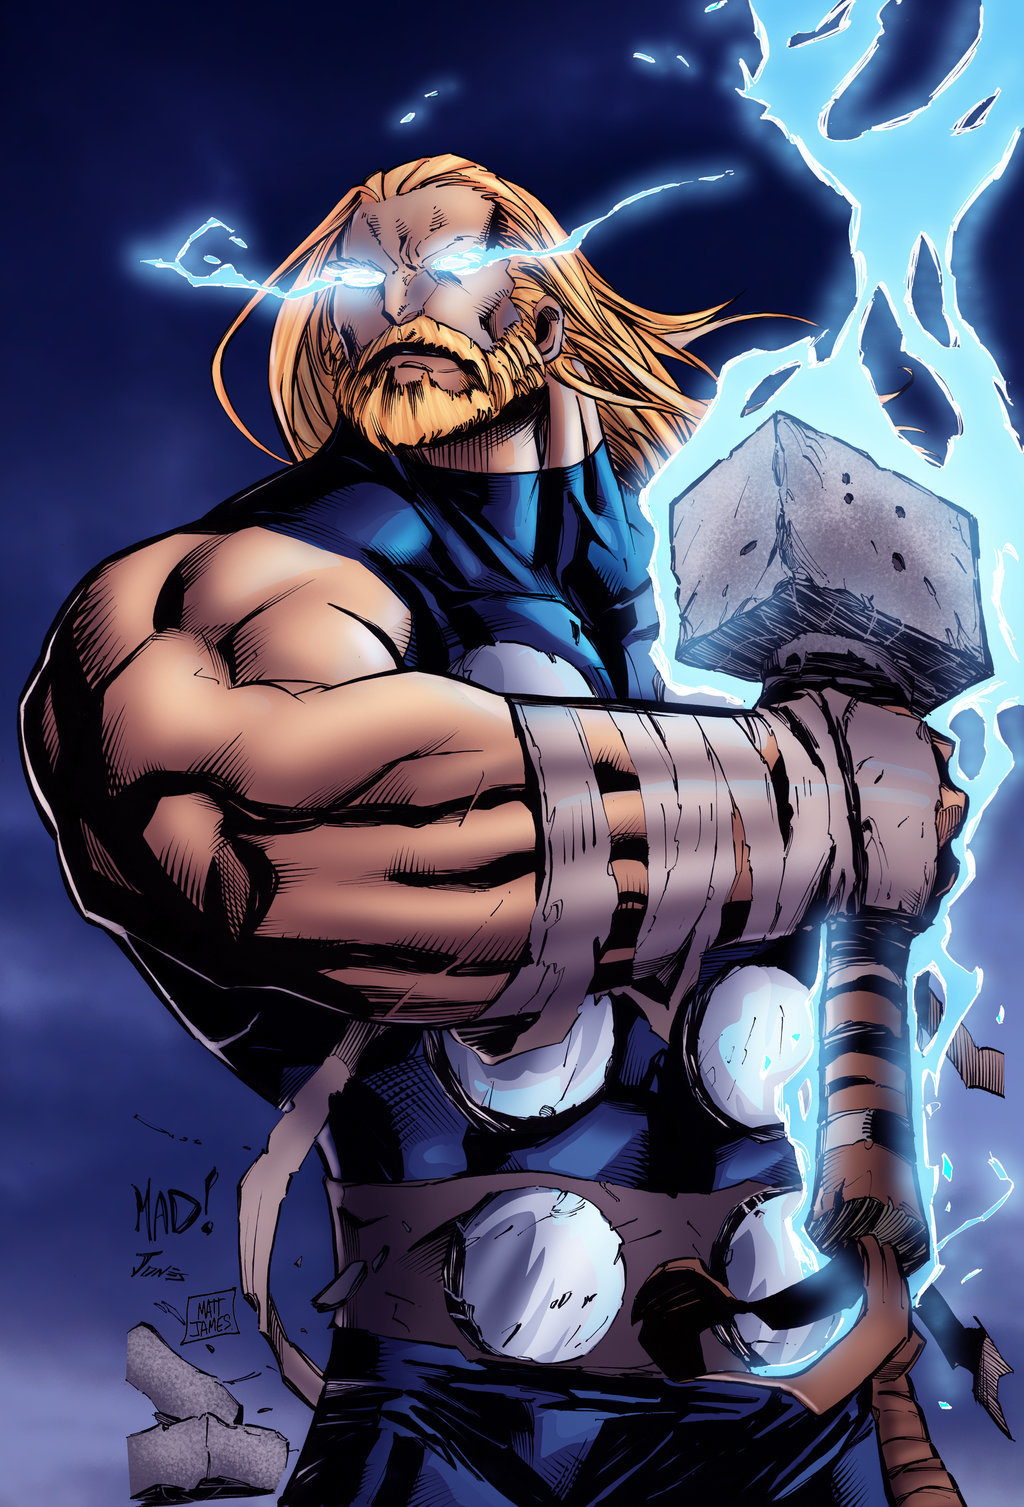 Matt james thor by mattjamescomicarts d8l3h0s